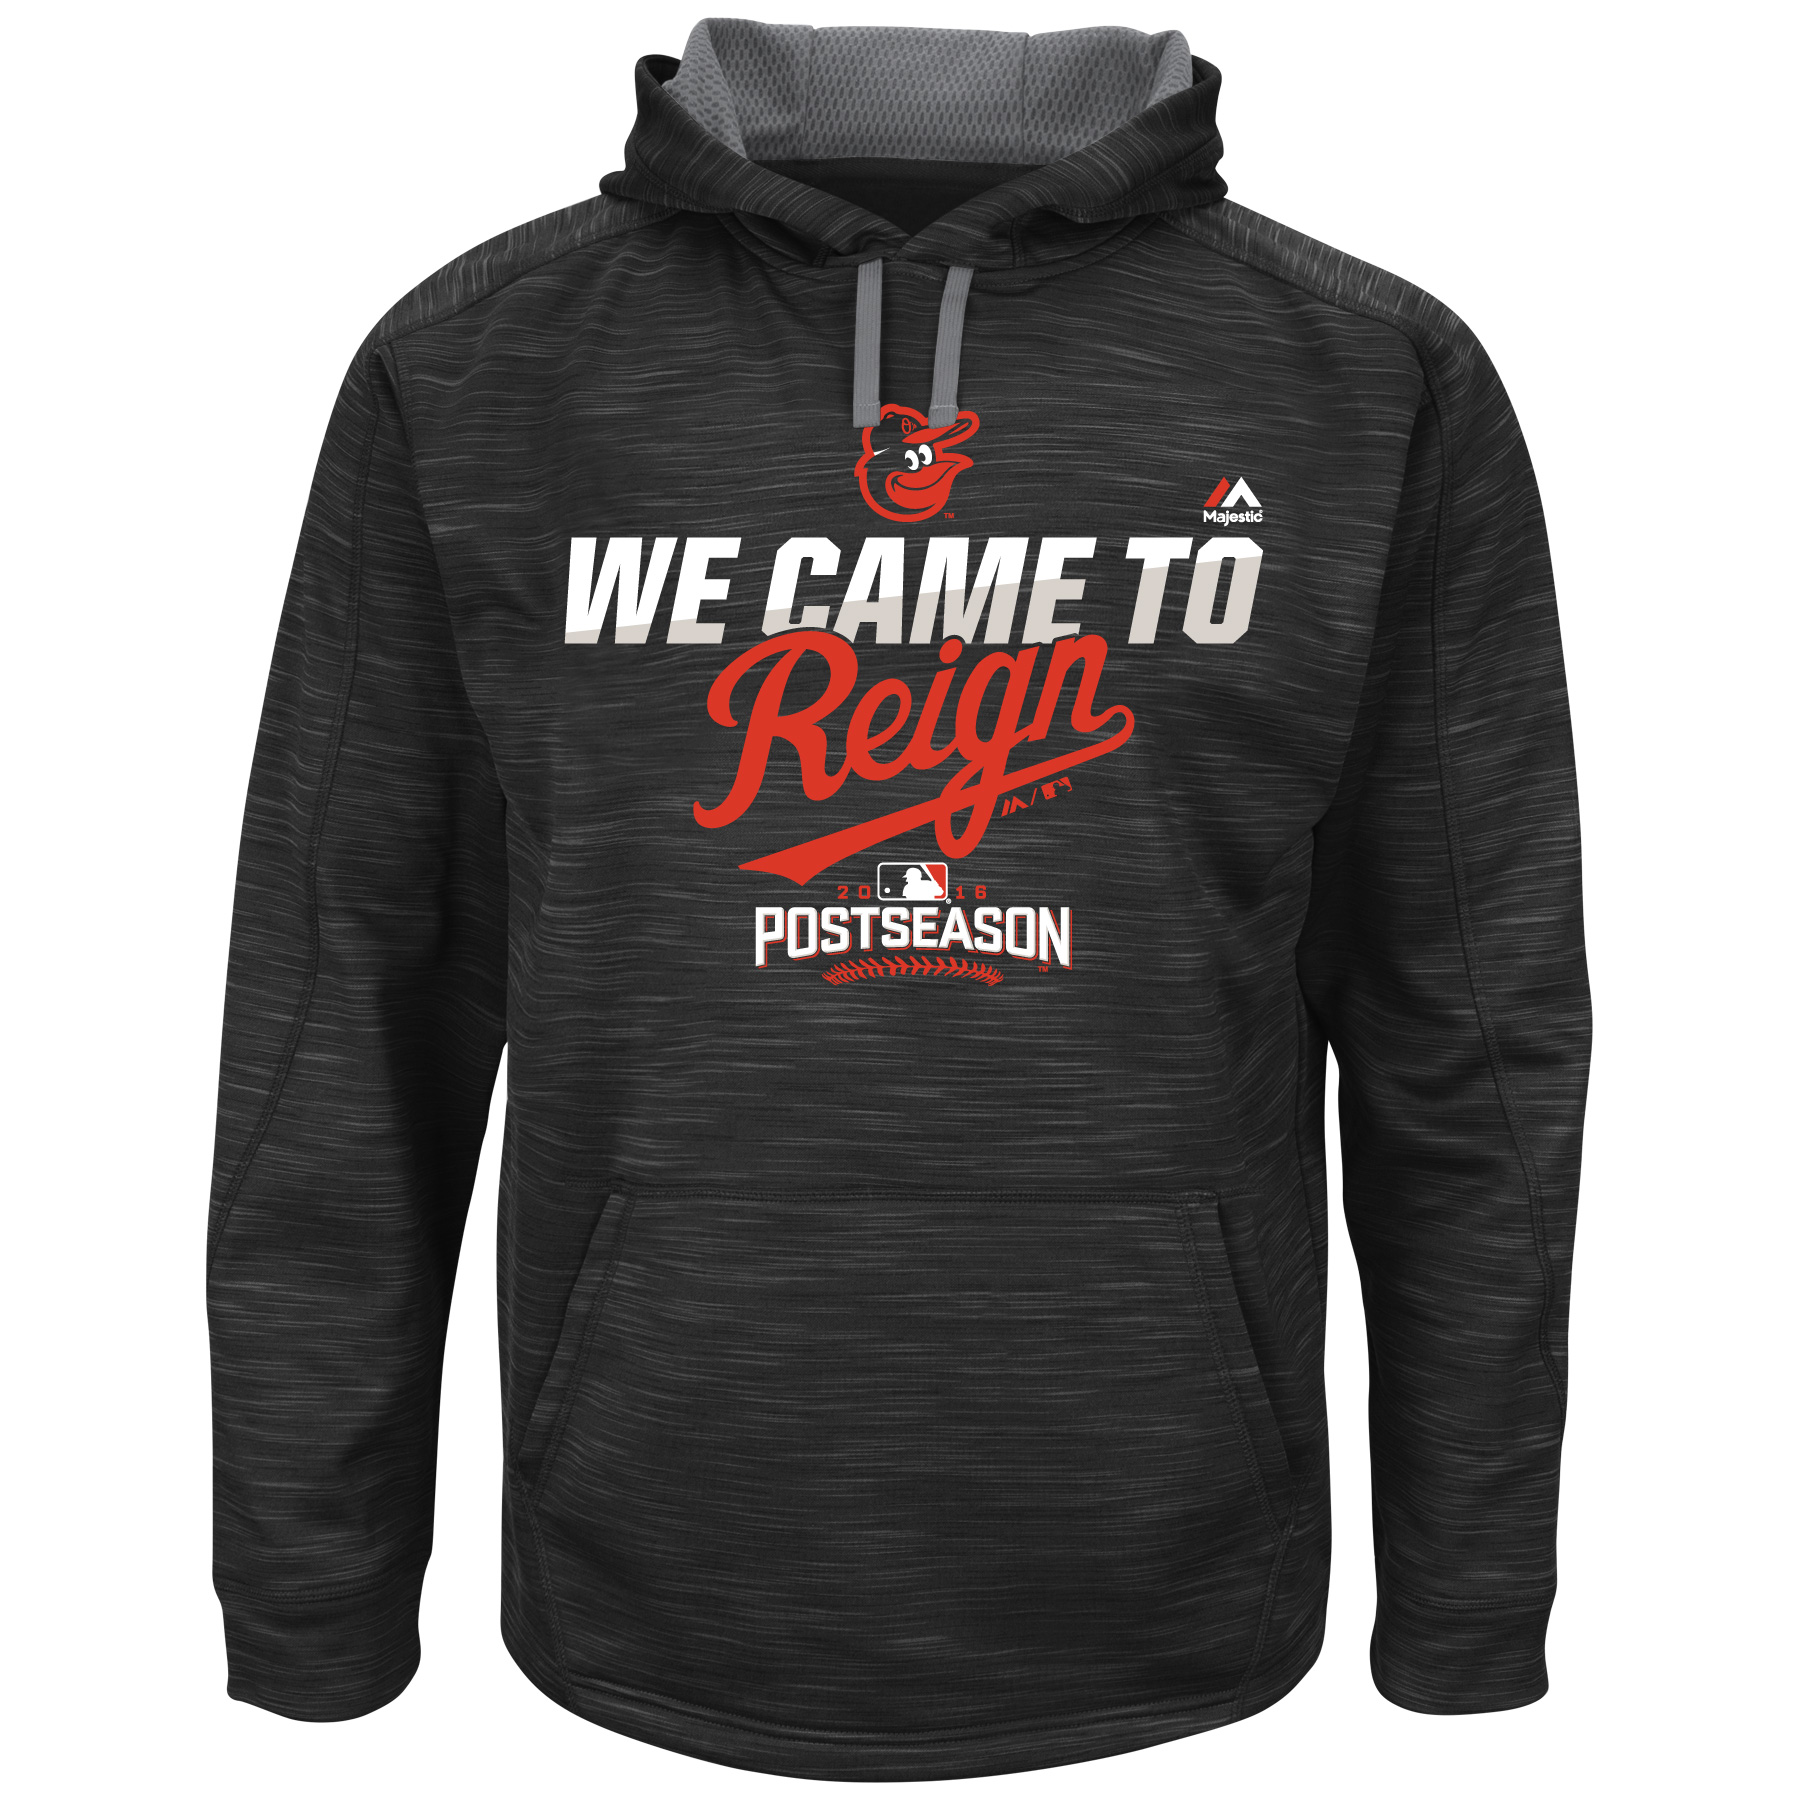 "Baltimore Orioles MLB Majestic Men's Black On-Field Therma Base ""We Came To Reign"" Hoodie by MAJESTIC LSG"